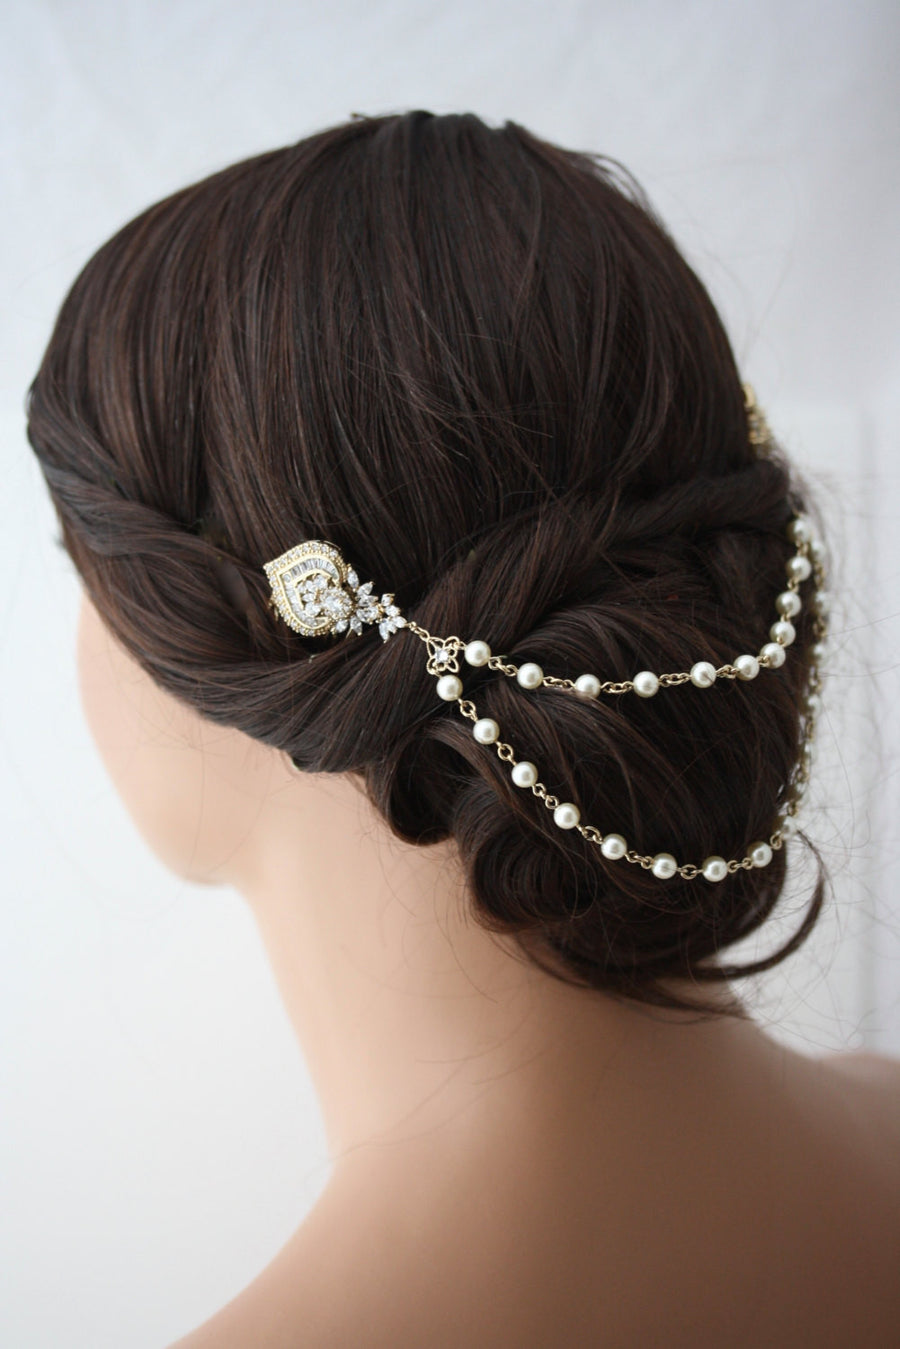 Evie Gold Wedding Hair Chain - Lulu Splendor